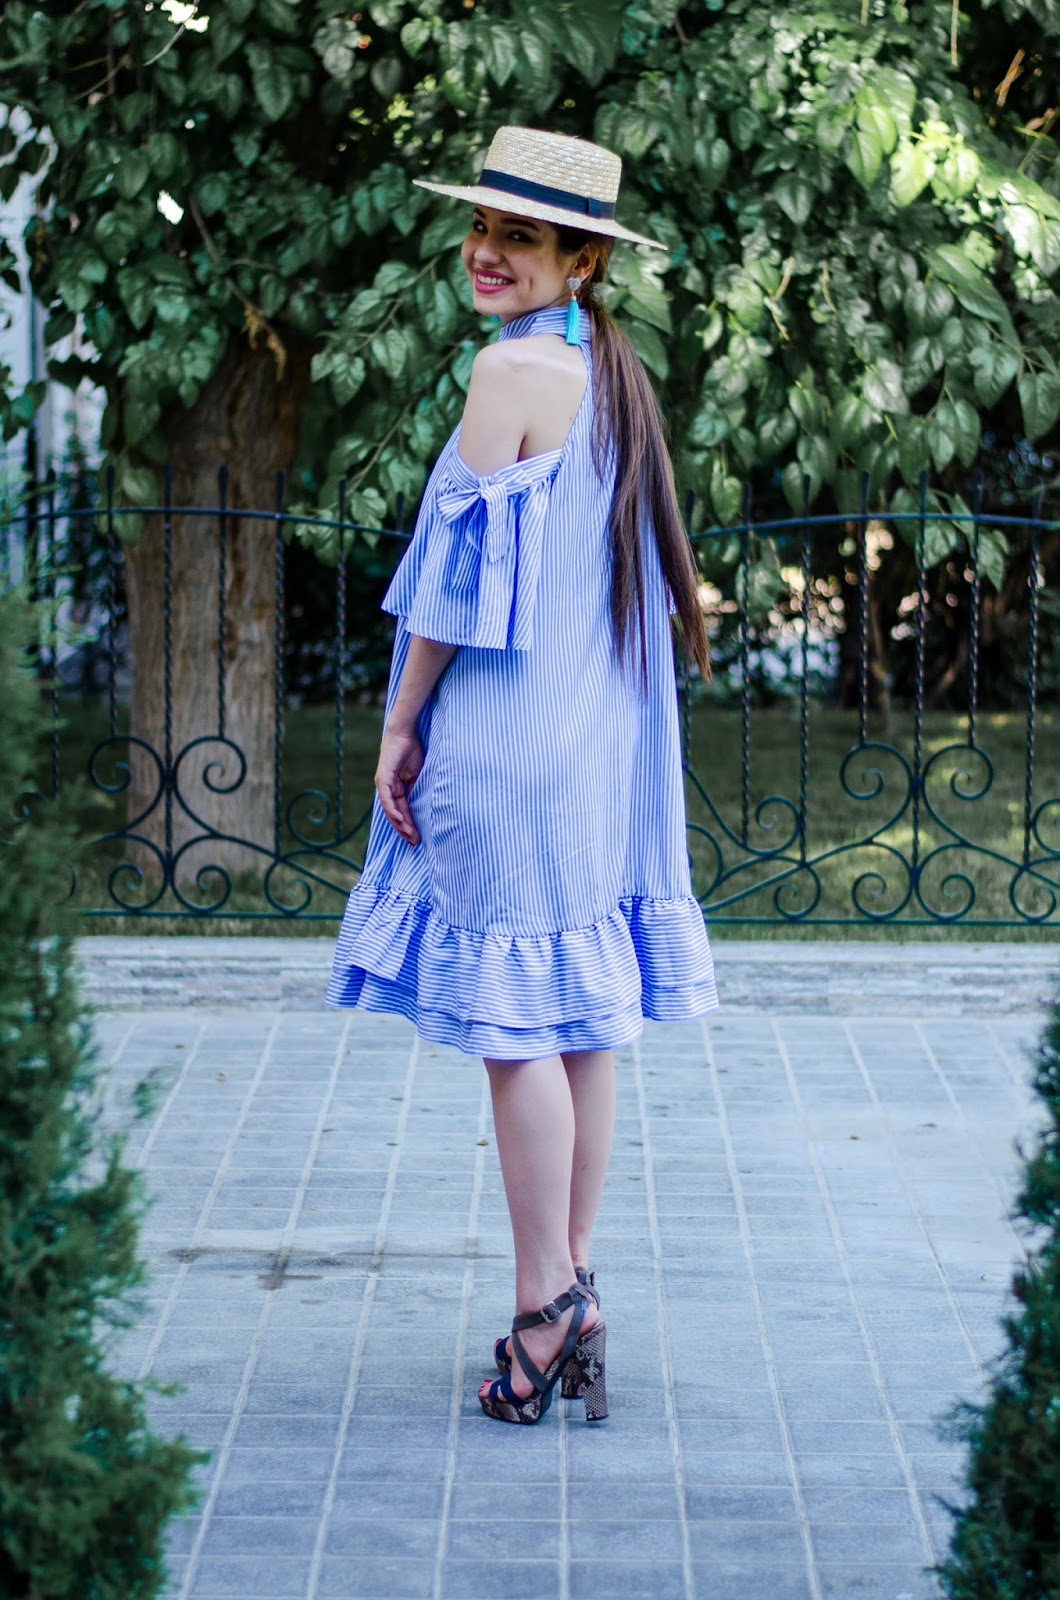 diyorasnotes diyora beta fashion blogger style outfitoftheday lookoftheday striped dress midid dress cold shoulders straw hat asos colorblock bag high heels street style outfi